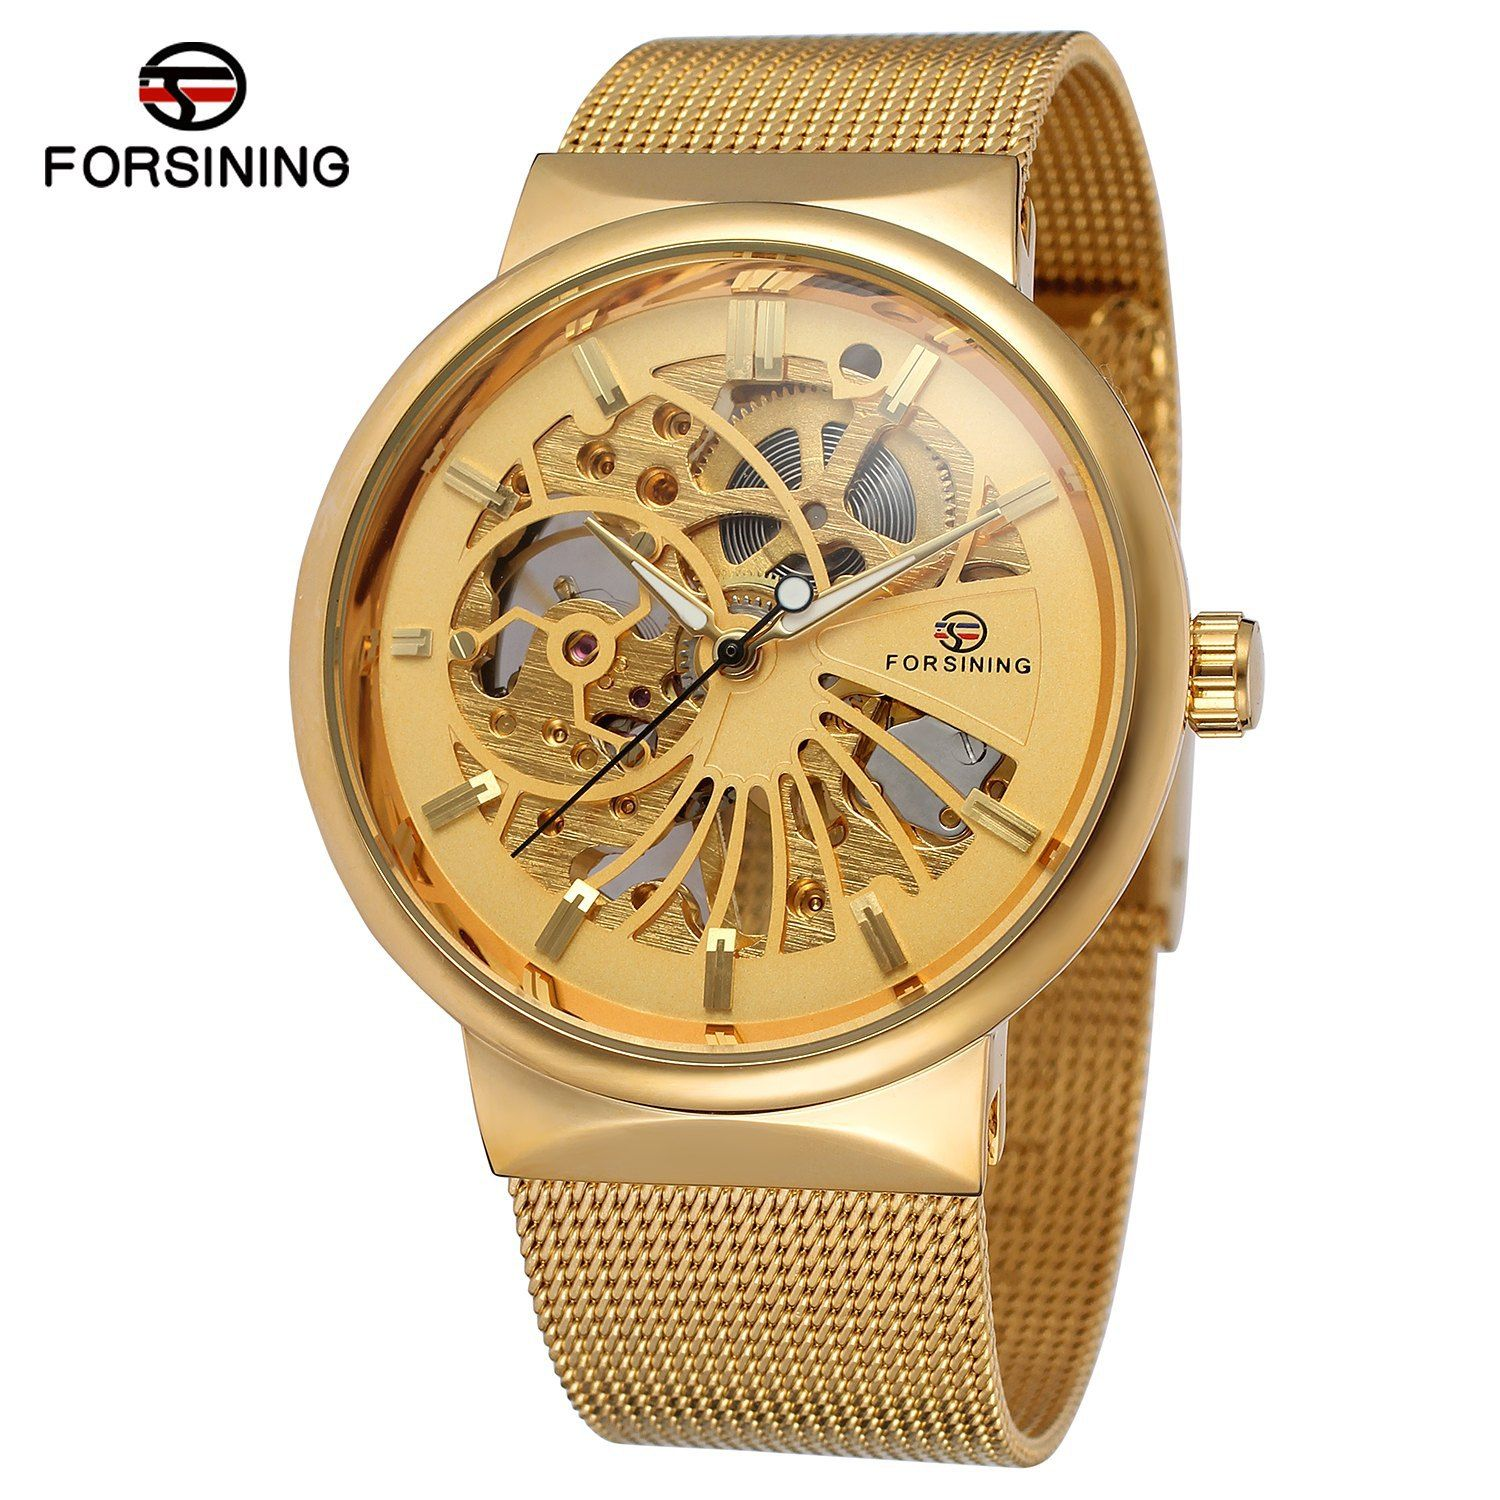 Fashion Forsining Top Brand Luxury Golden Watches Men's Automatic Mechanical Movement Mesh Strap Ultra Thin Stainless Steel Band